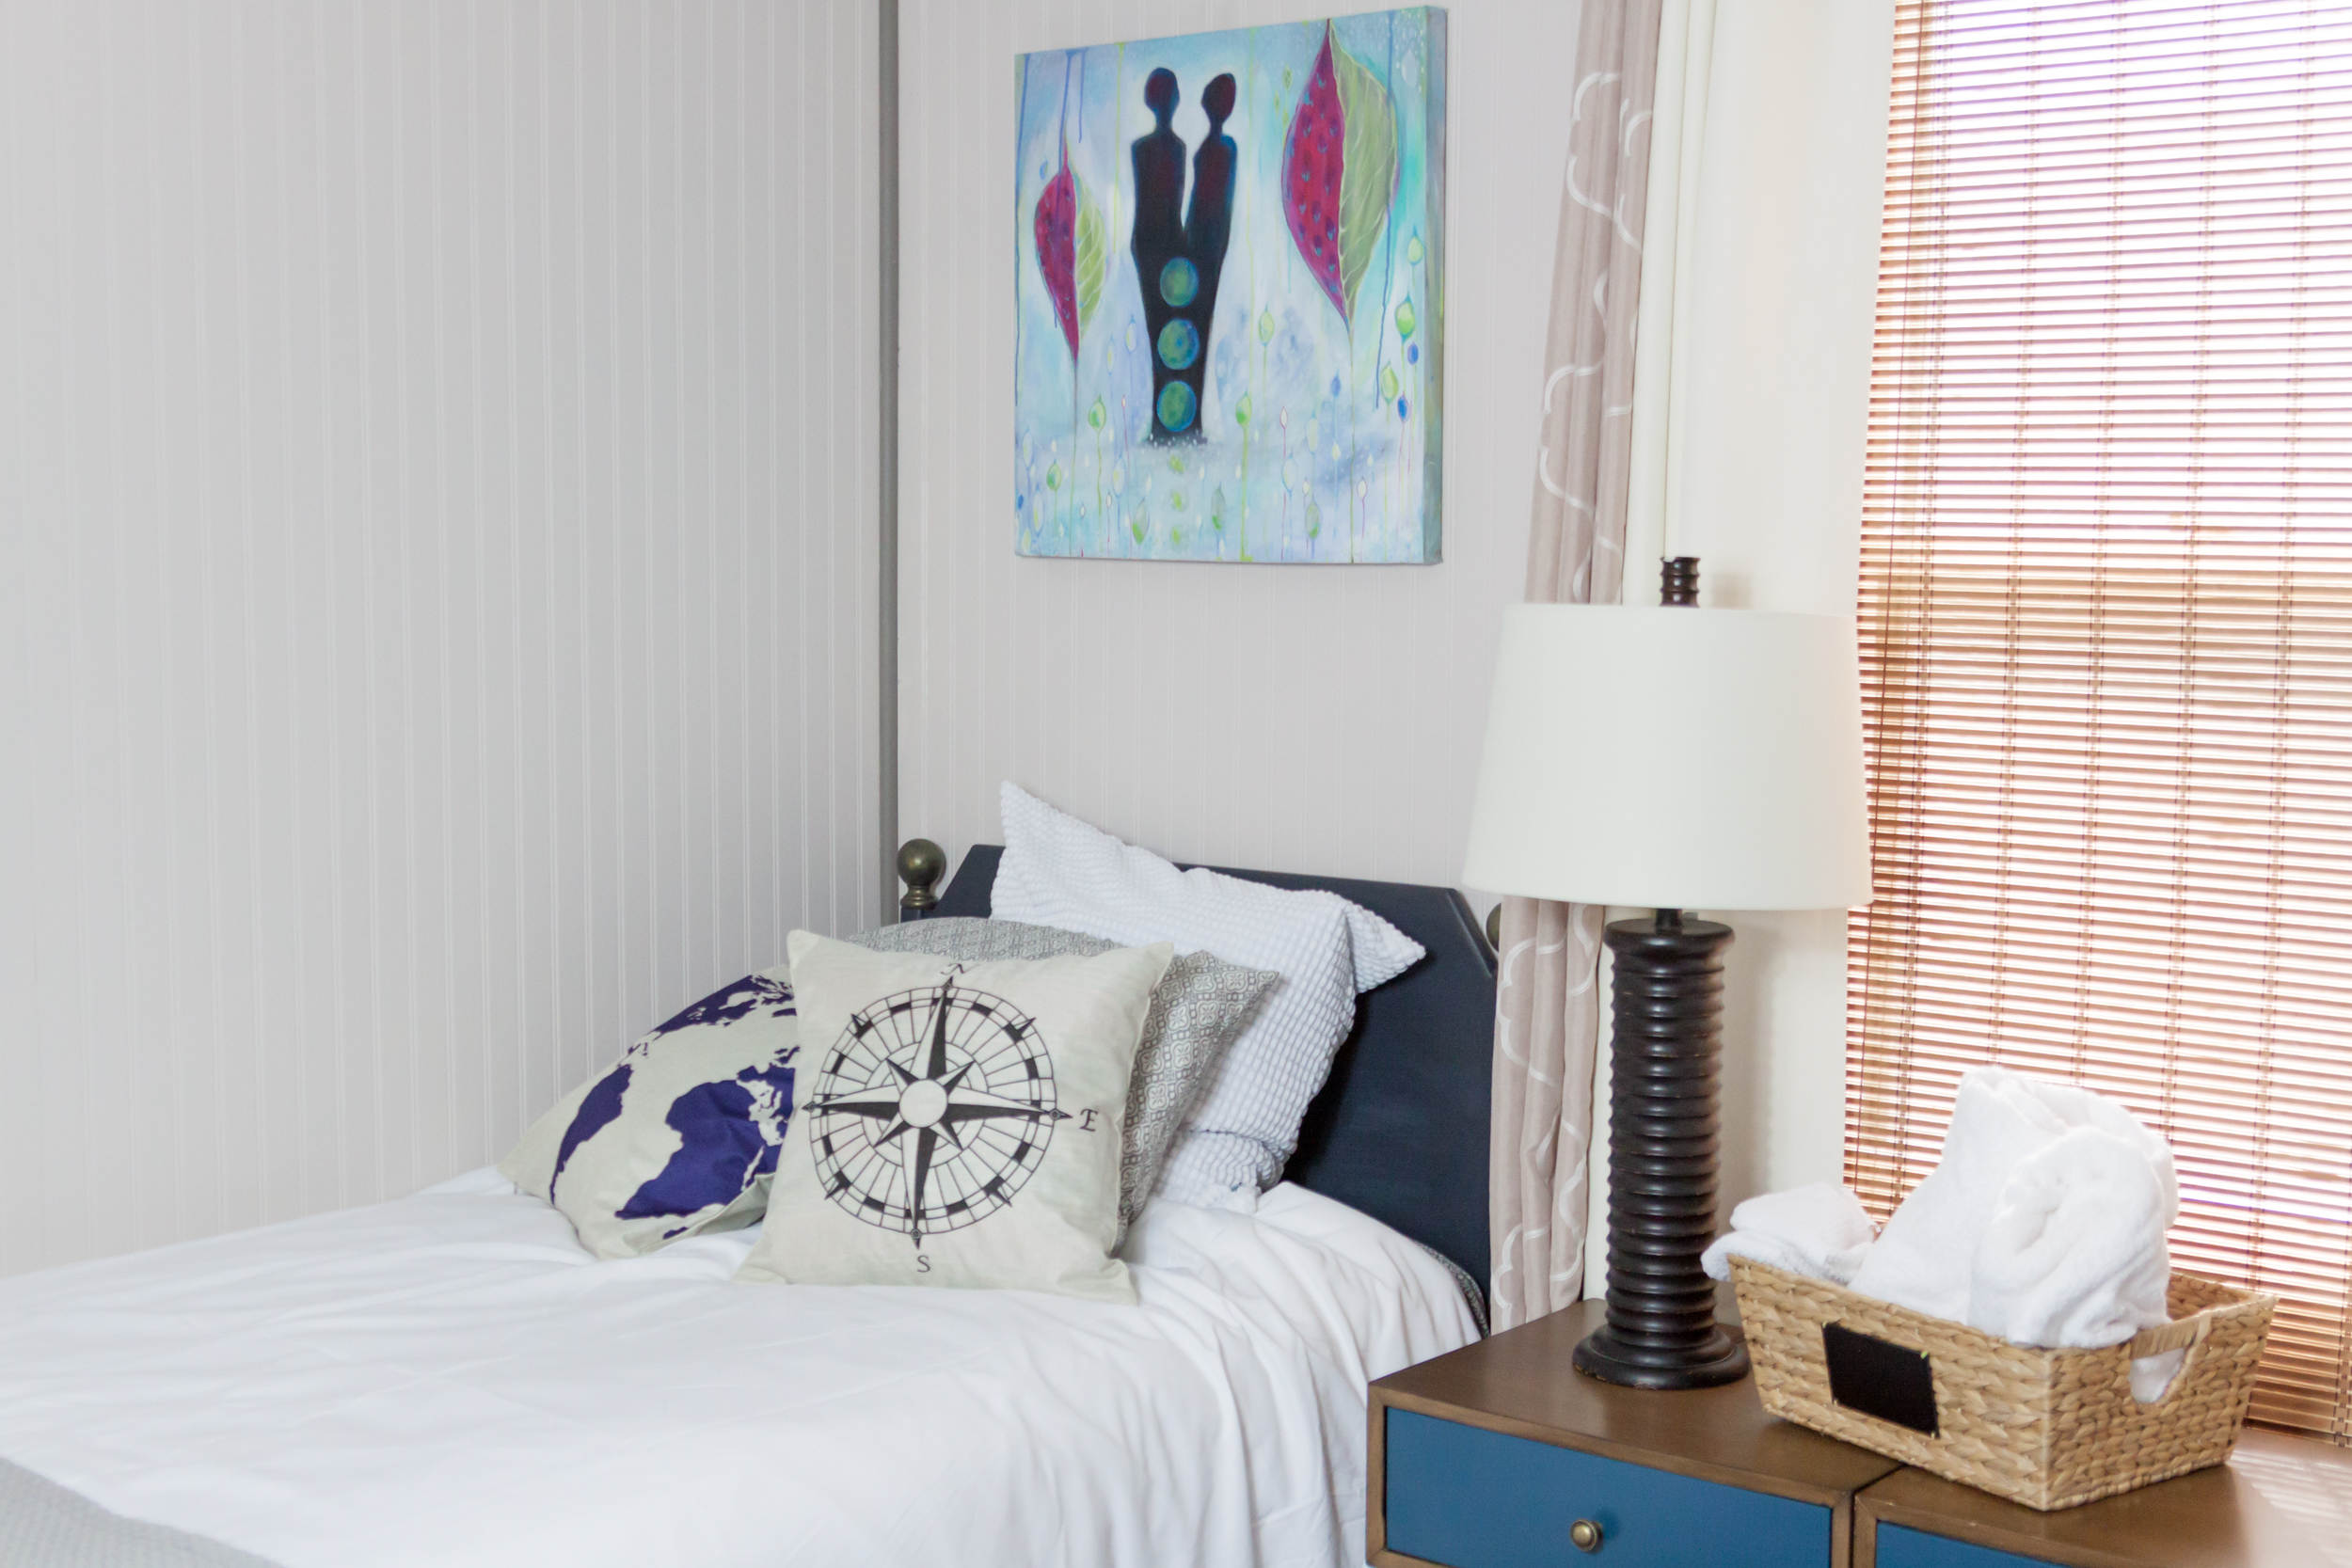 twin lakes bed and new art.jpg